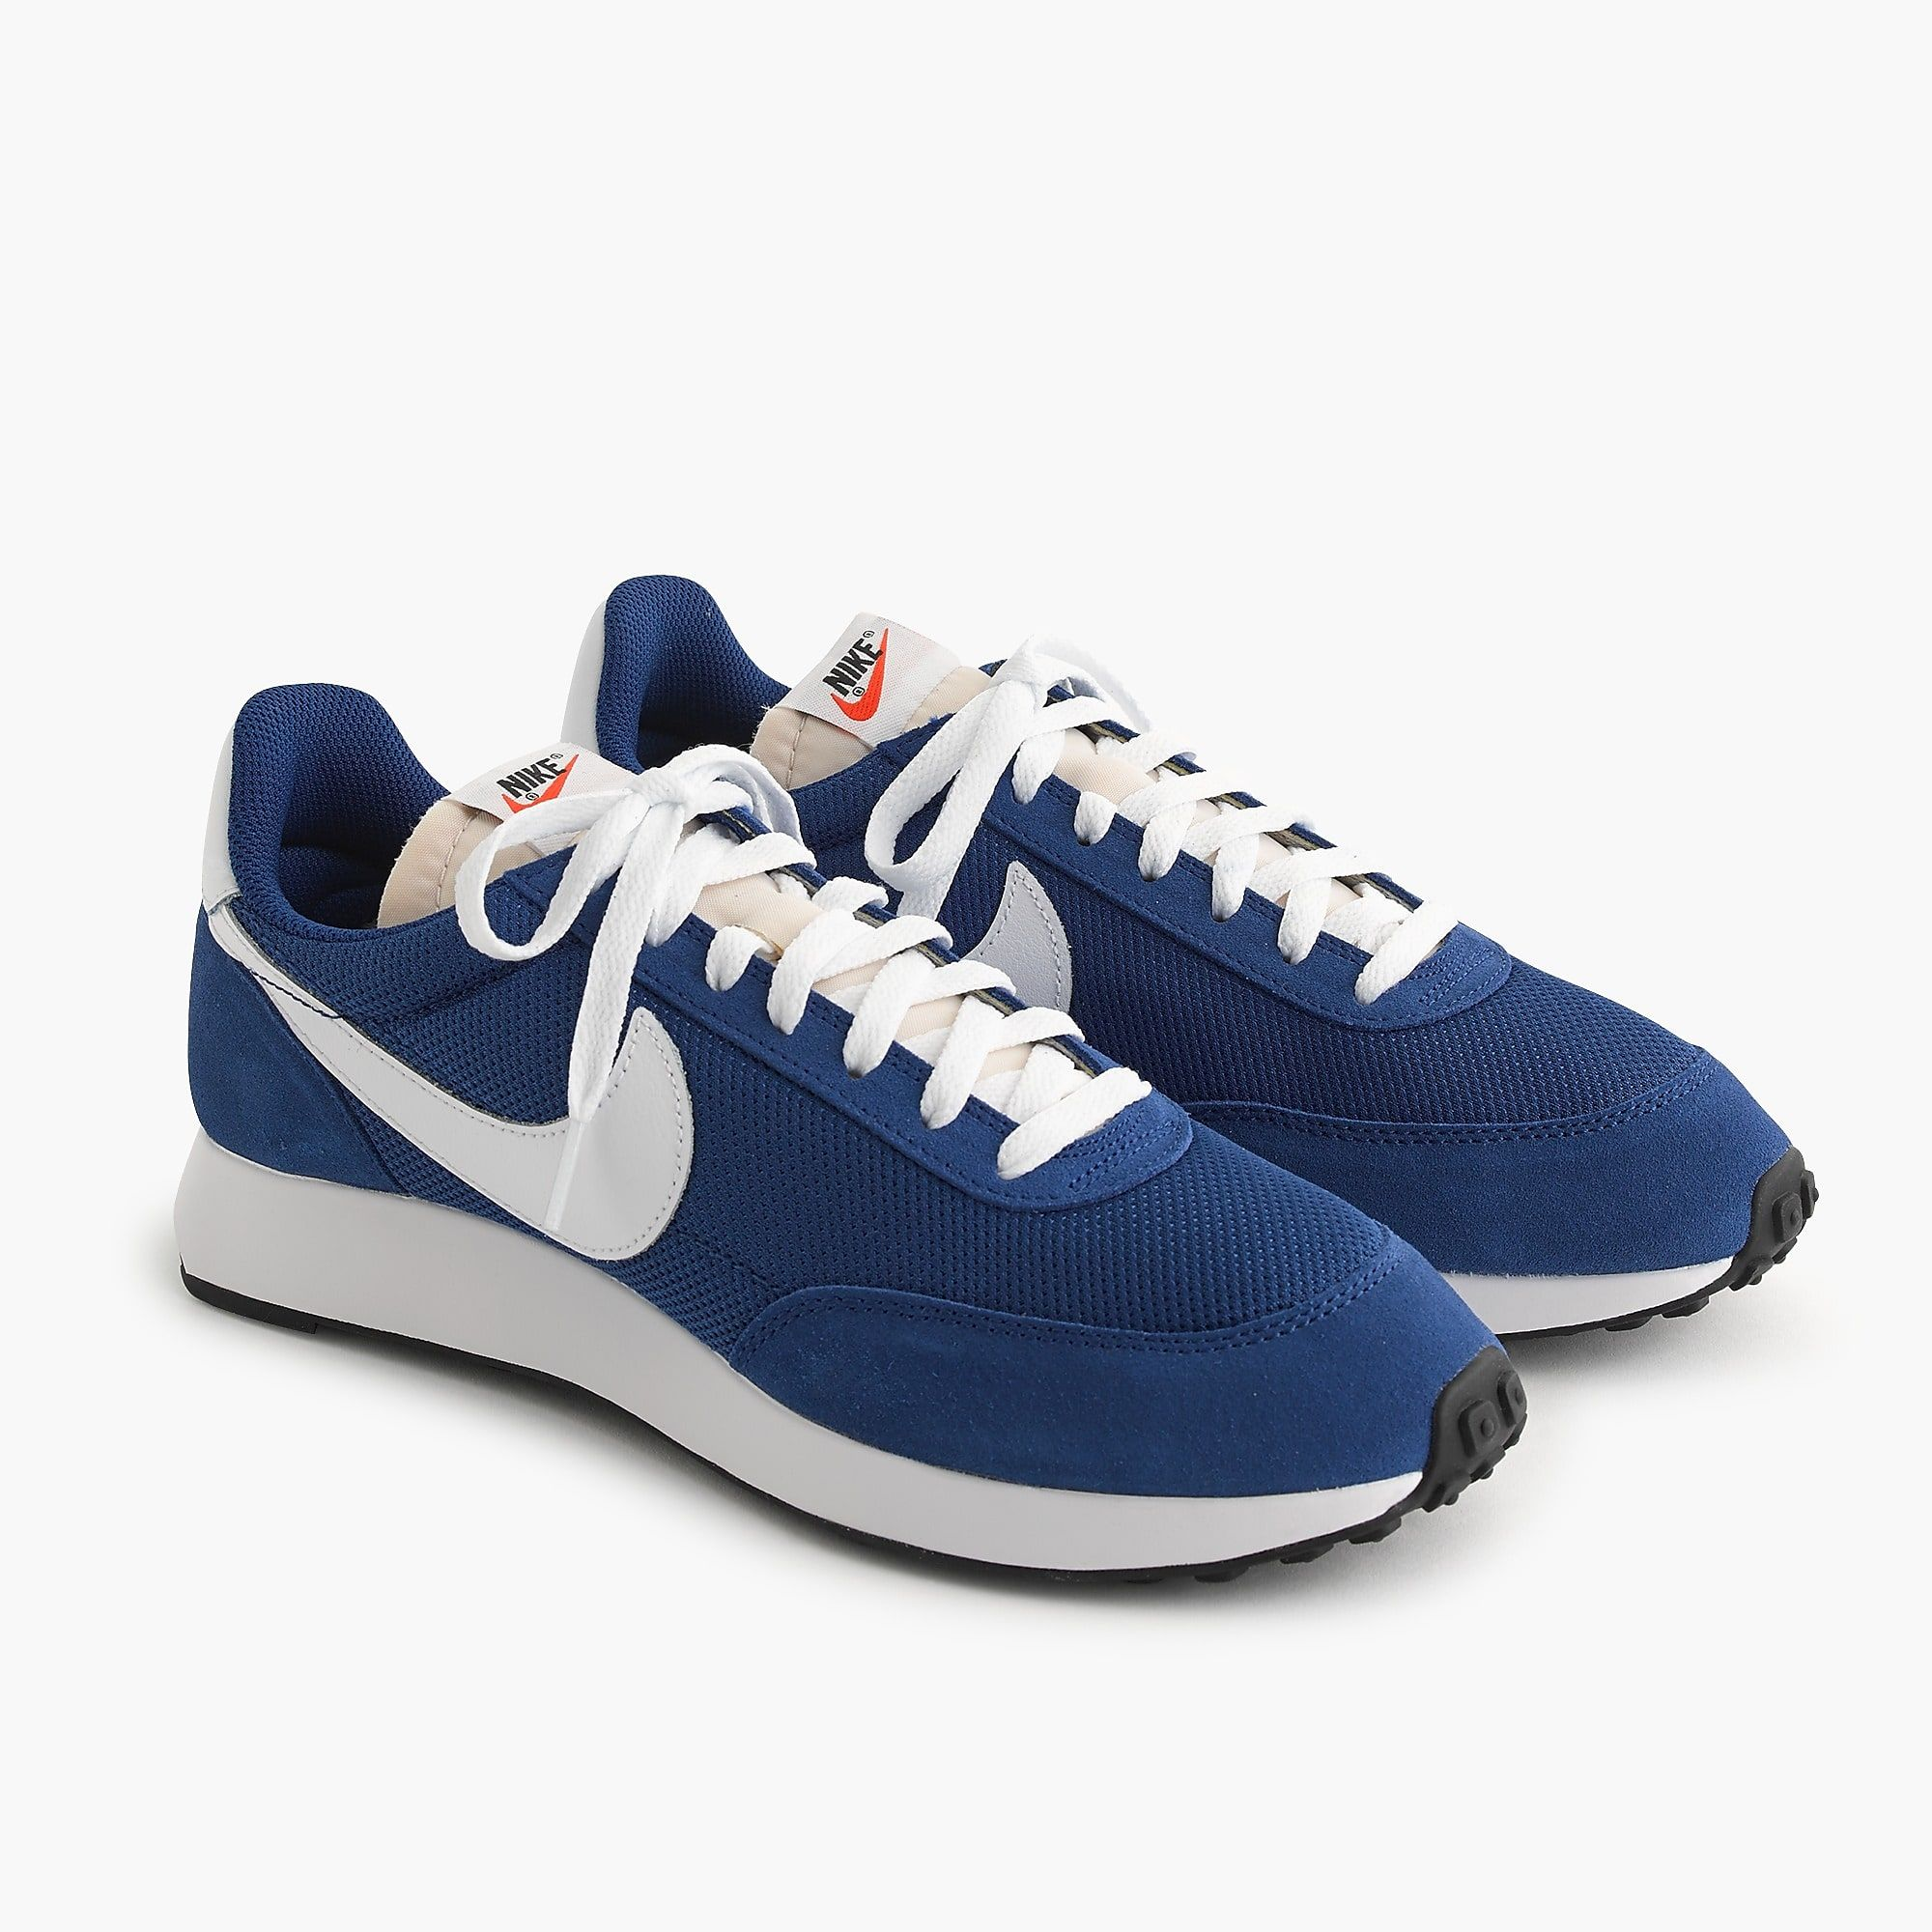 Shop the Nike Air Tailwind 79 sneakers at J.Crew and see